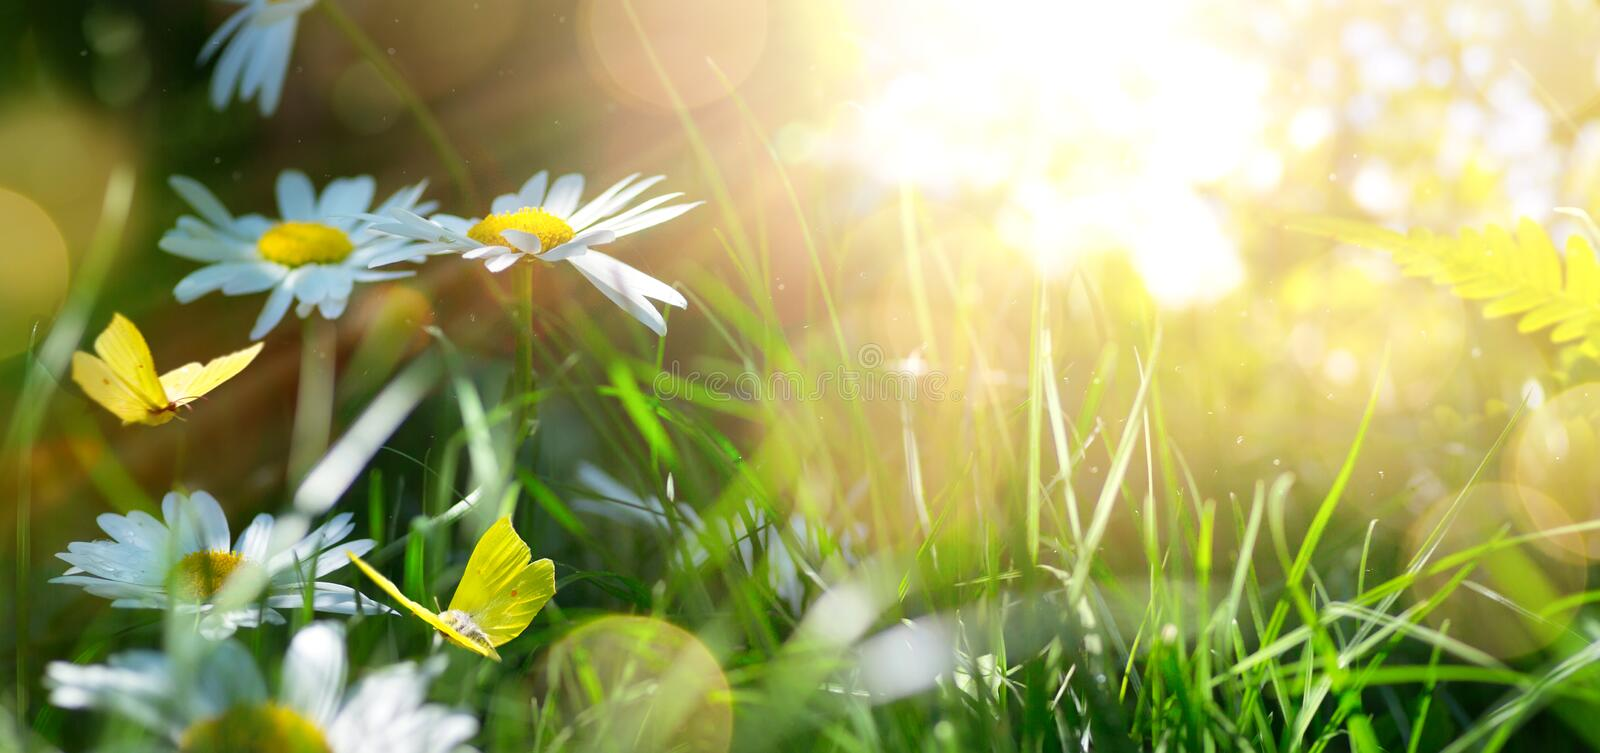 Spring or summer nature background with blooming white flowers and fly butterfly against sunrise sunlight stock photo